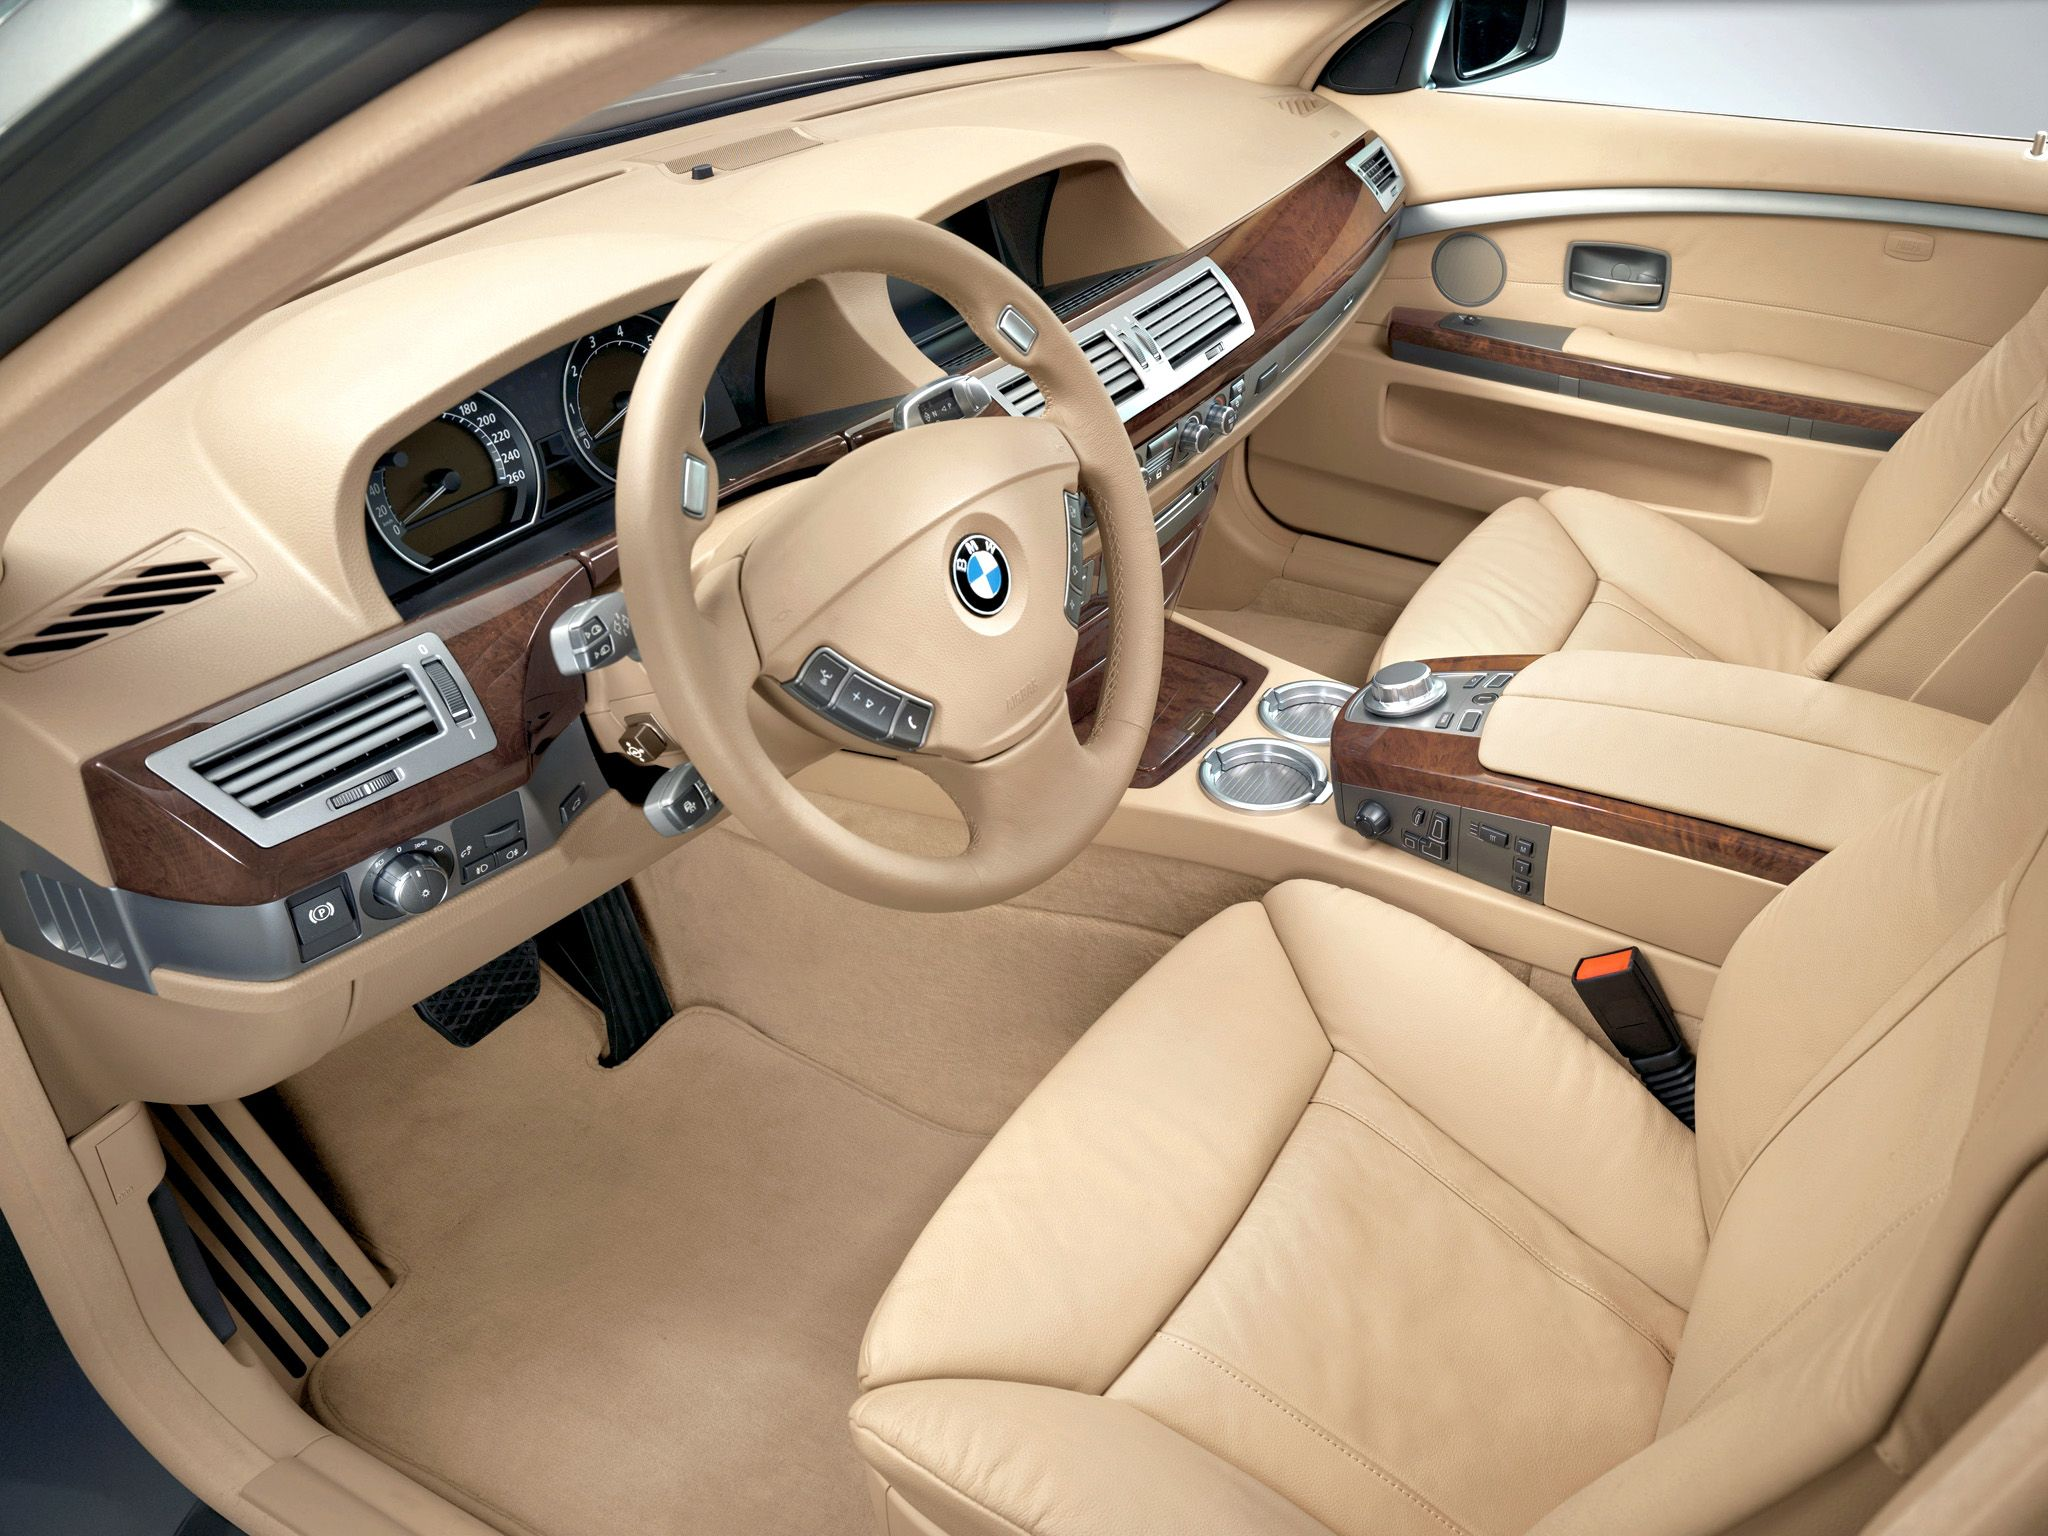 E65 BMW 7 Series Interior FieldsBMW FieldsAuto